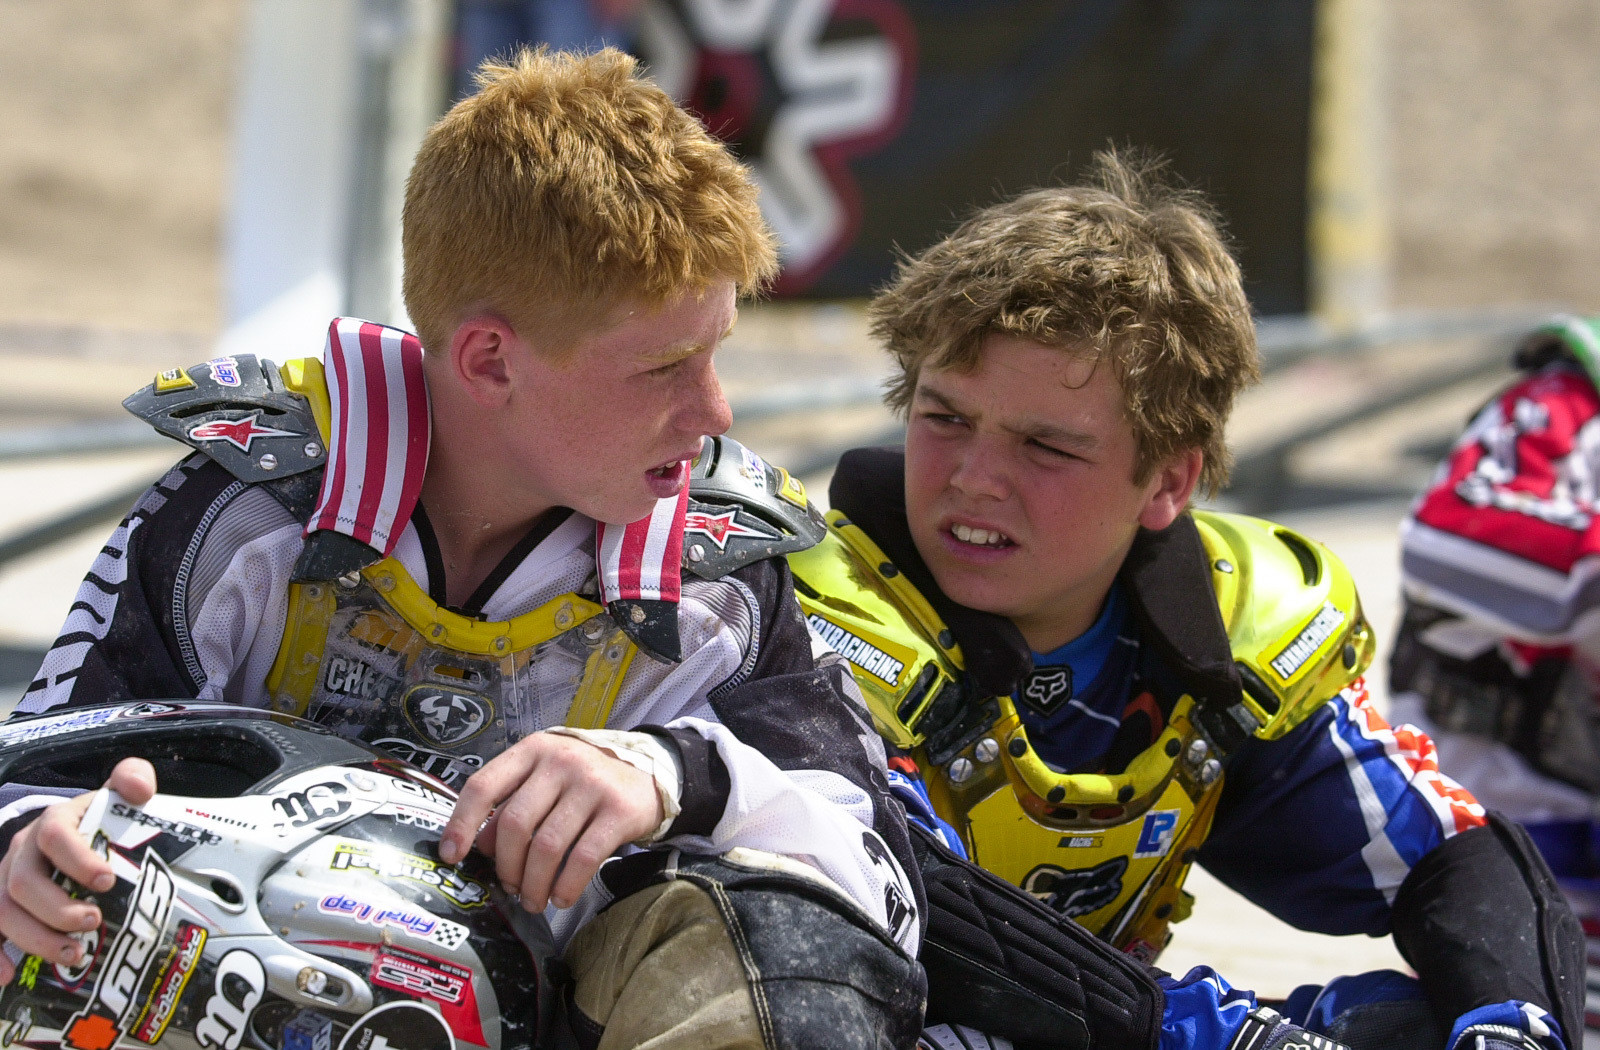 Hmm...we wonder if these two groms ever made anything of themselves. Oh, wait...that's Ryan Villopoto and Zach Osborne.